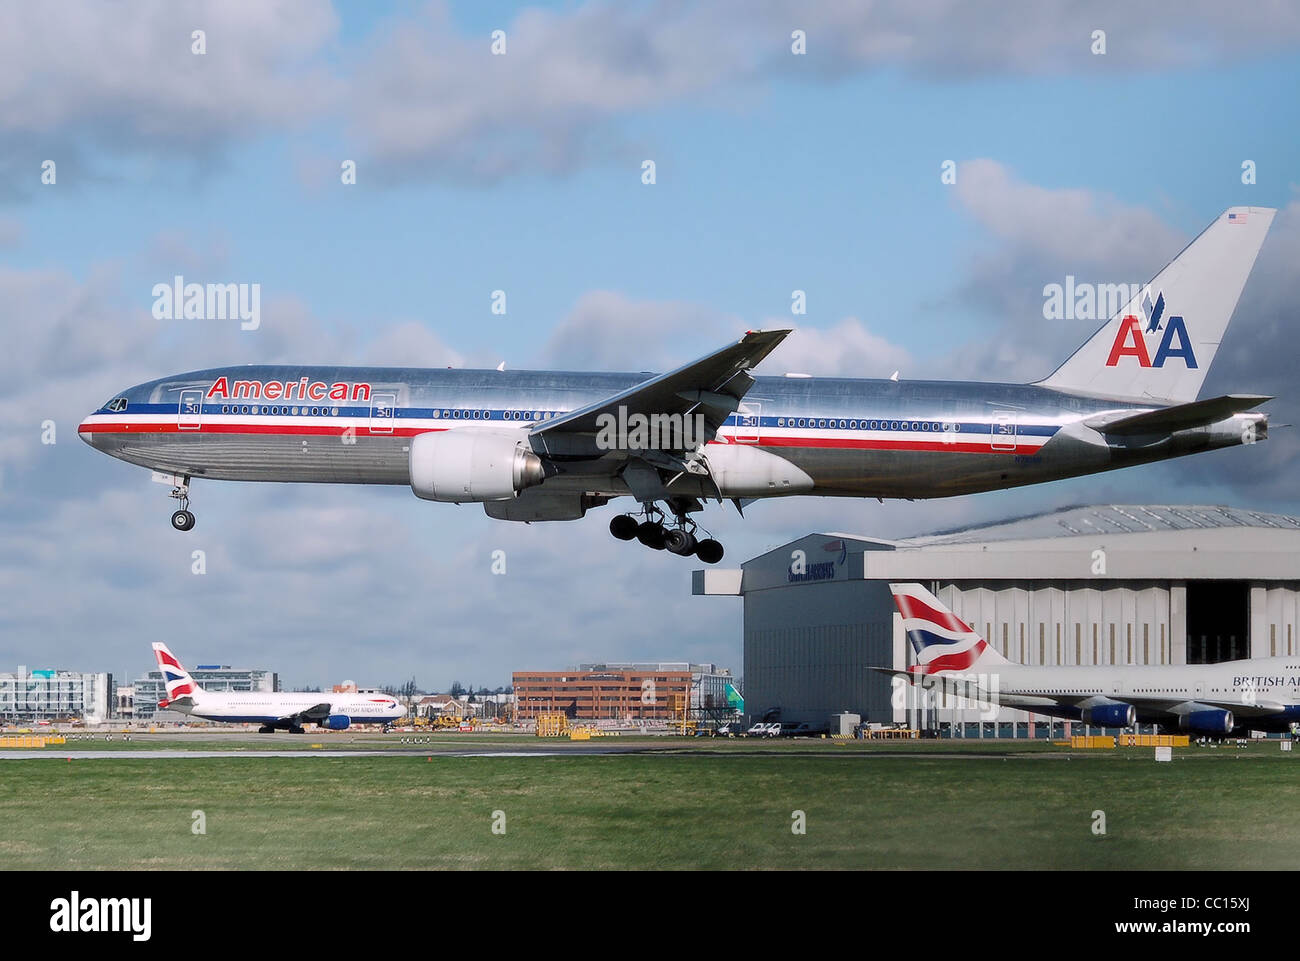 American Airlines Boeing 777-200ER landing at London Heathrow Airport - Stock Image